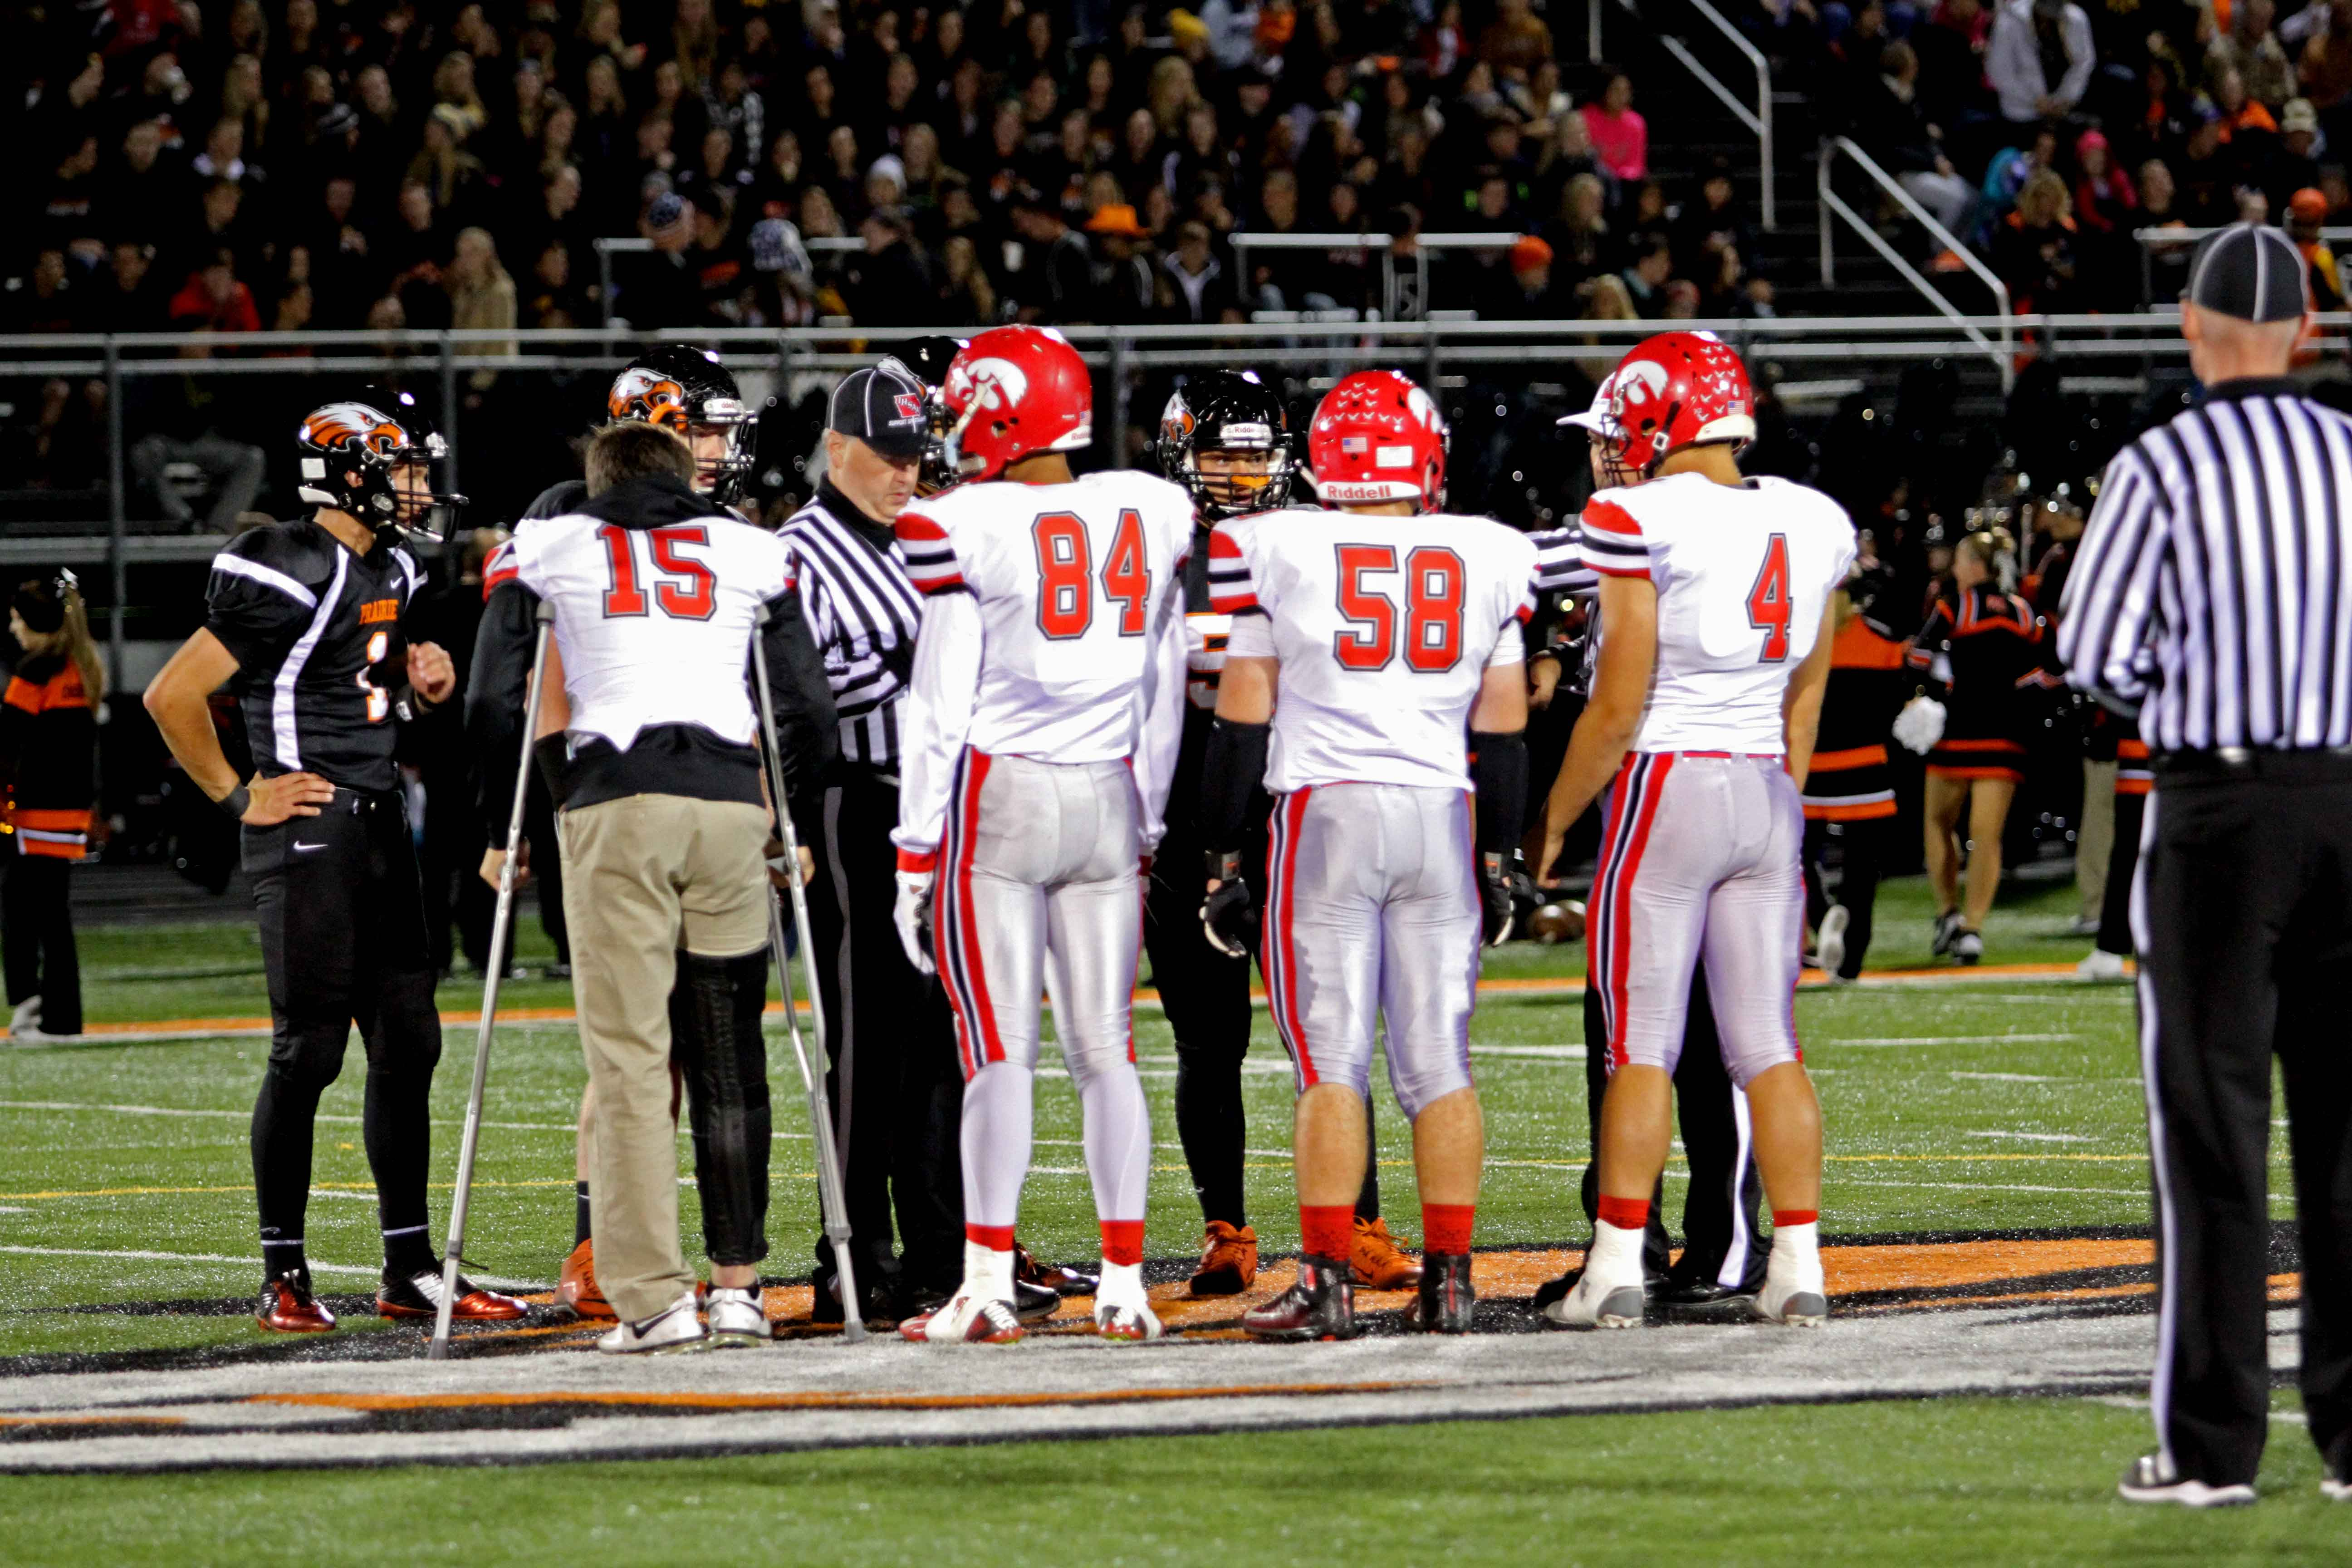 Nate Wieland '17 joins his fellow captains on the field for the coin toss on crutches following his injury early in the previous weeks game versus Ottumwa.